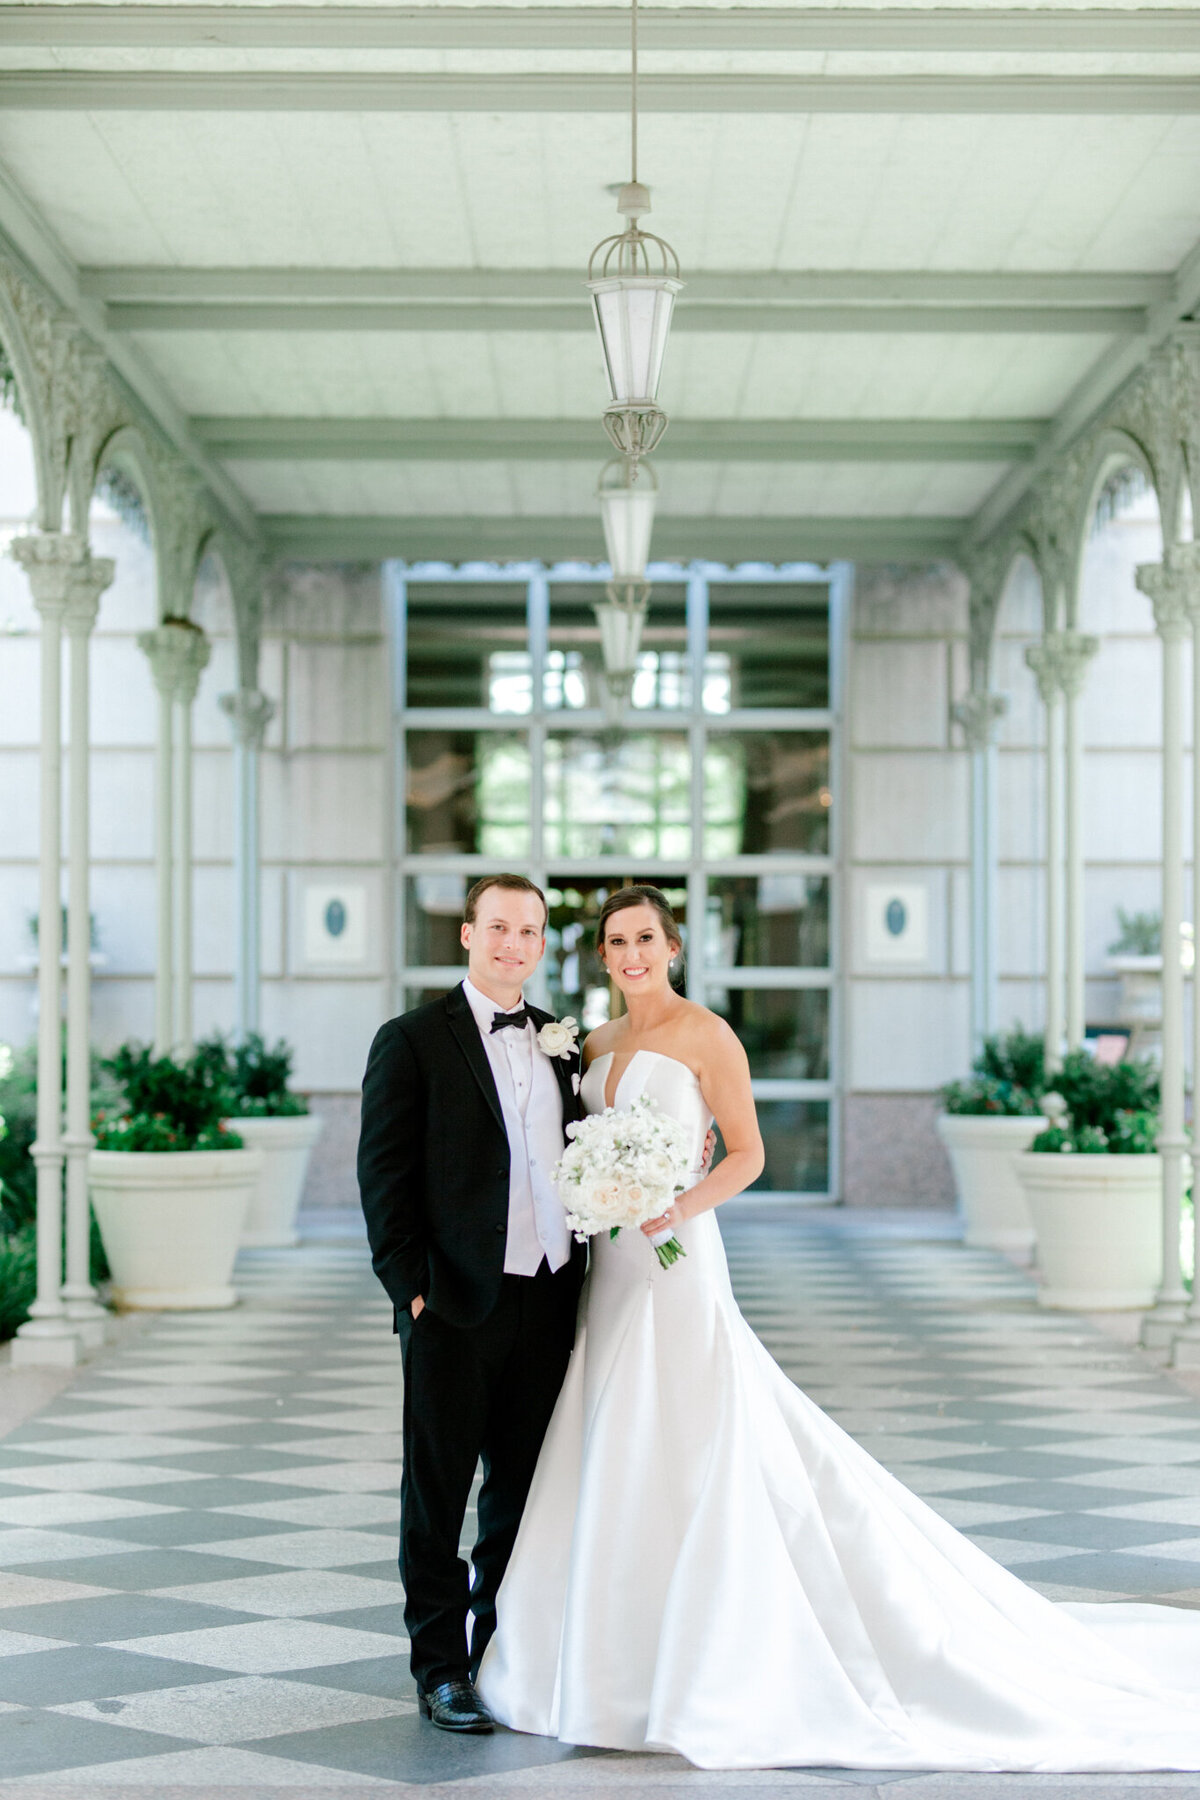 Wedding at the Crescent Court Hotel and Highland Park United Methodist Church in Dallas | Sami Kathryn Photography | DFW Wedding Photographer-58